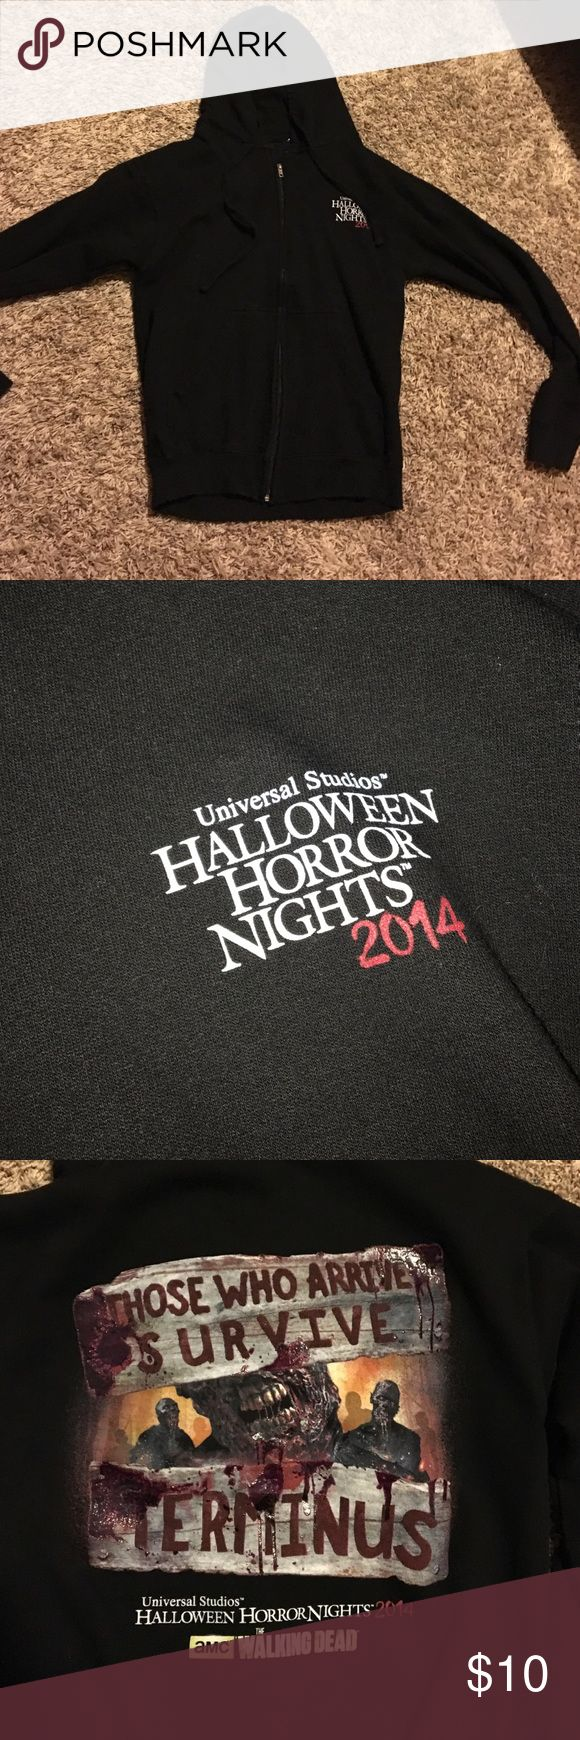 Universal Studios Halloween 2014 Sweatshirt Medium 2014 Halloween horror nights universal studios zip up Sweatshirt worn once Jackets & Coats